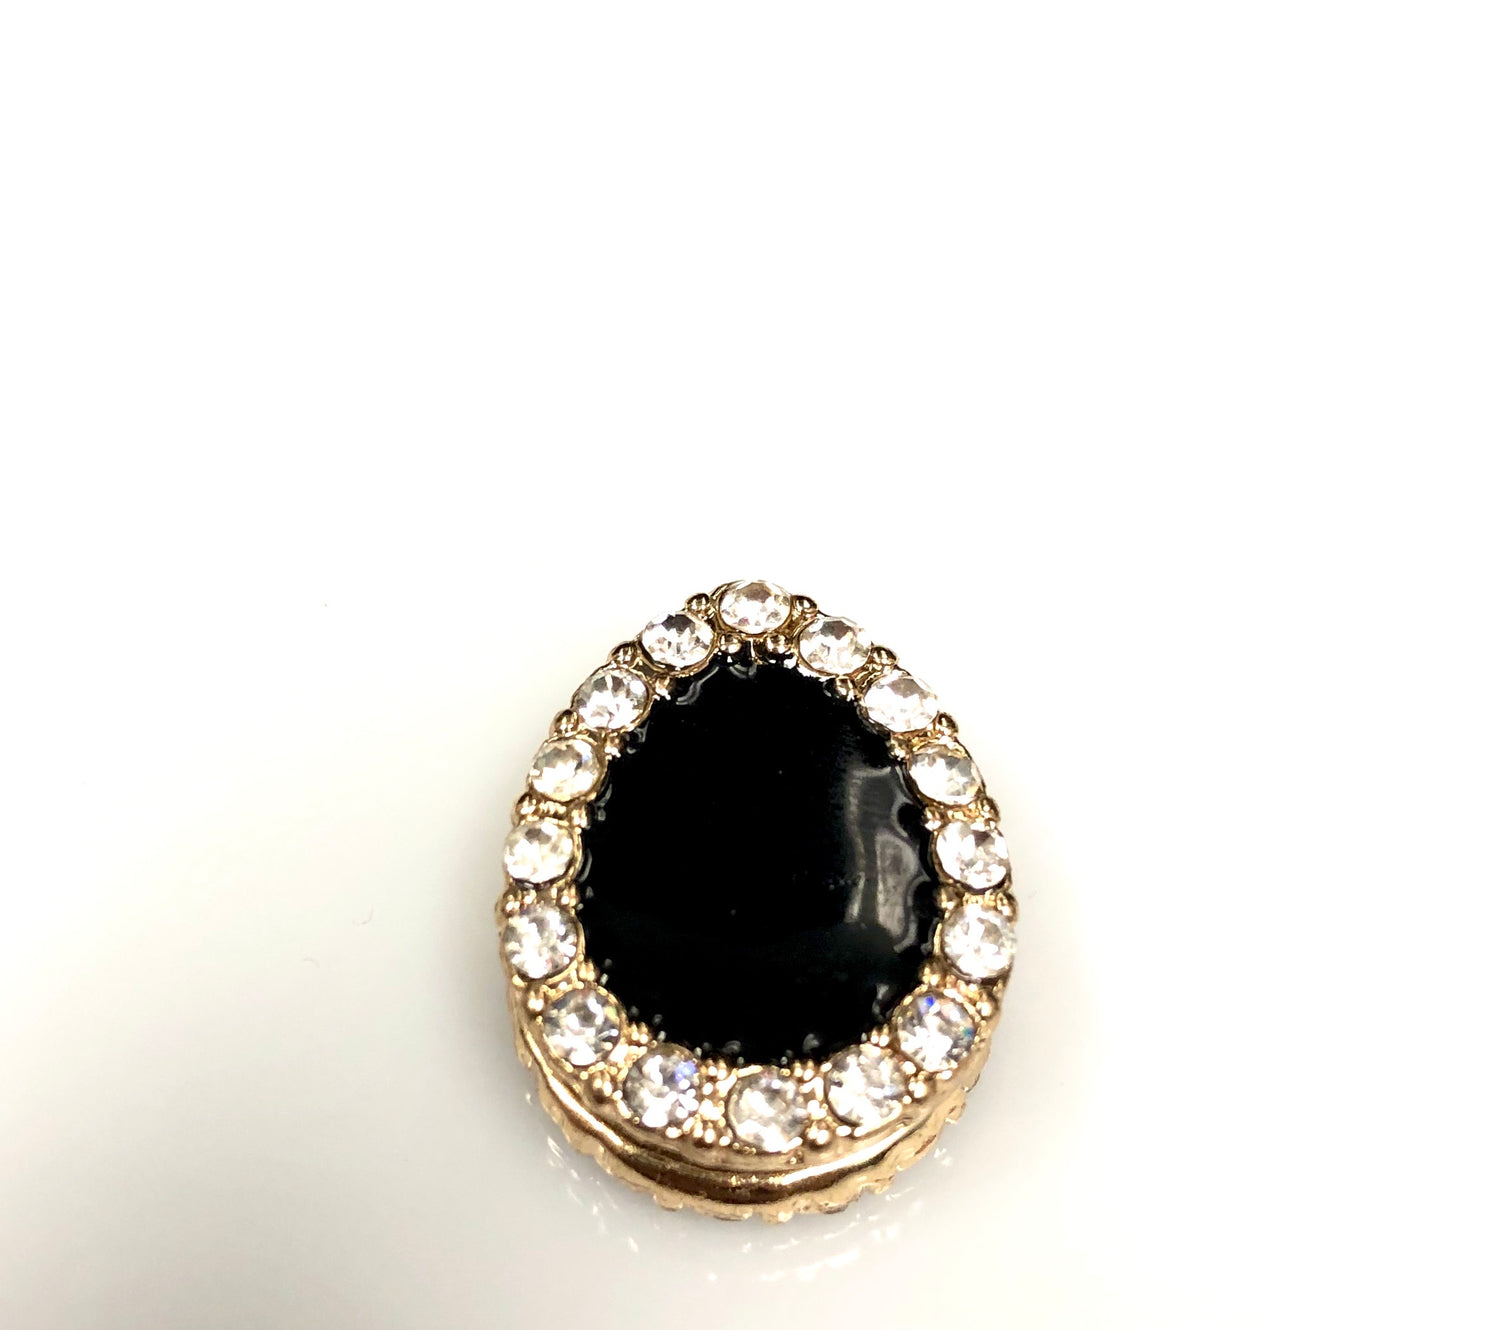 Pear Shaped Magnetic Pin - Black